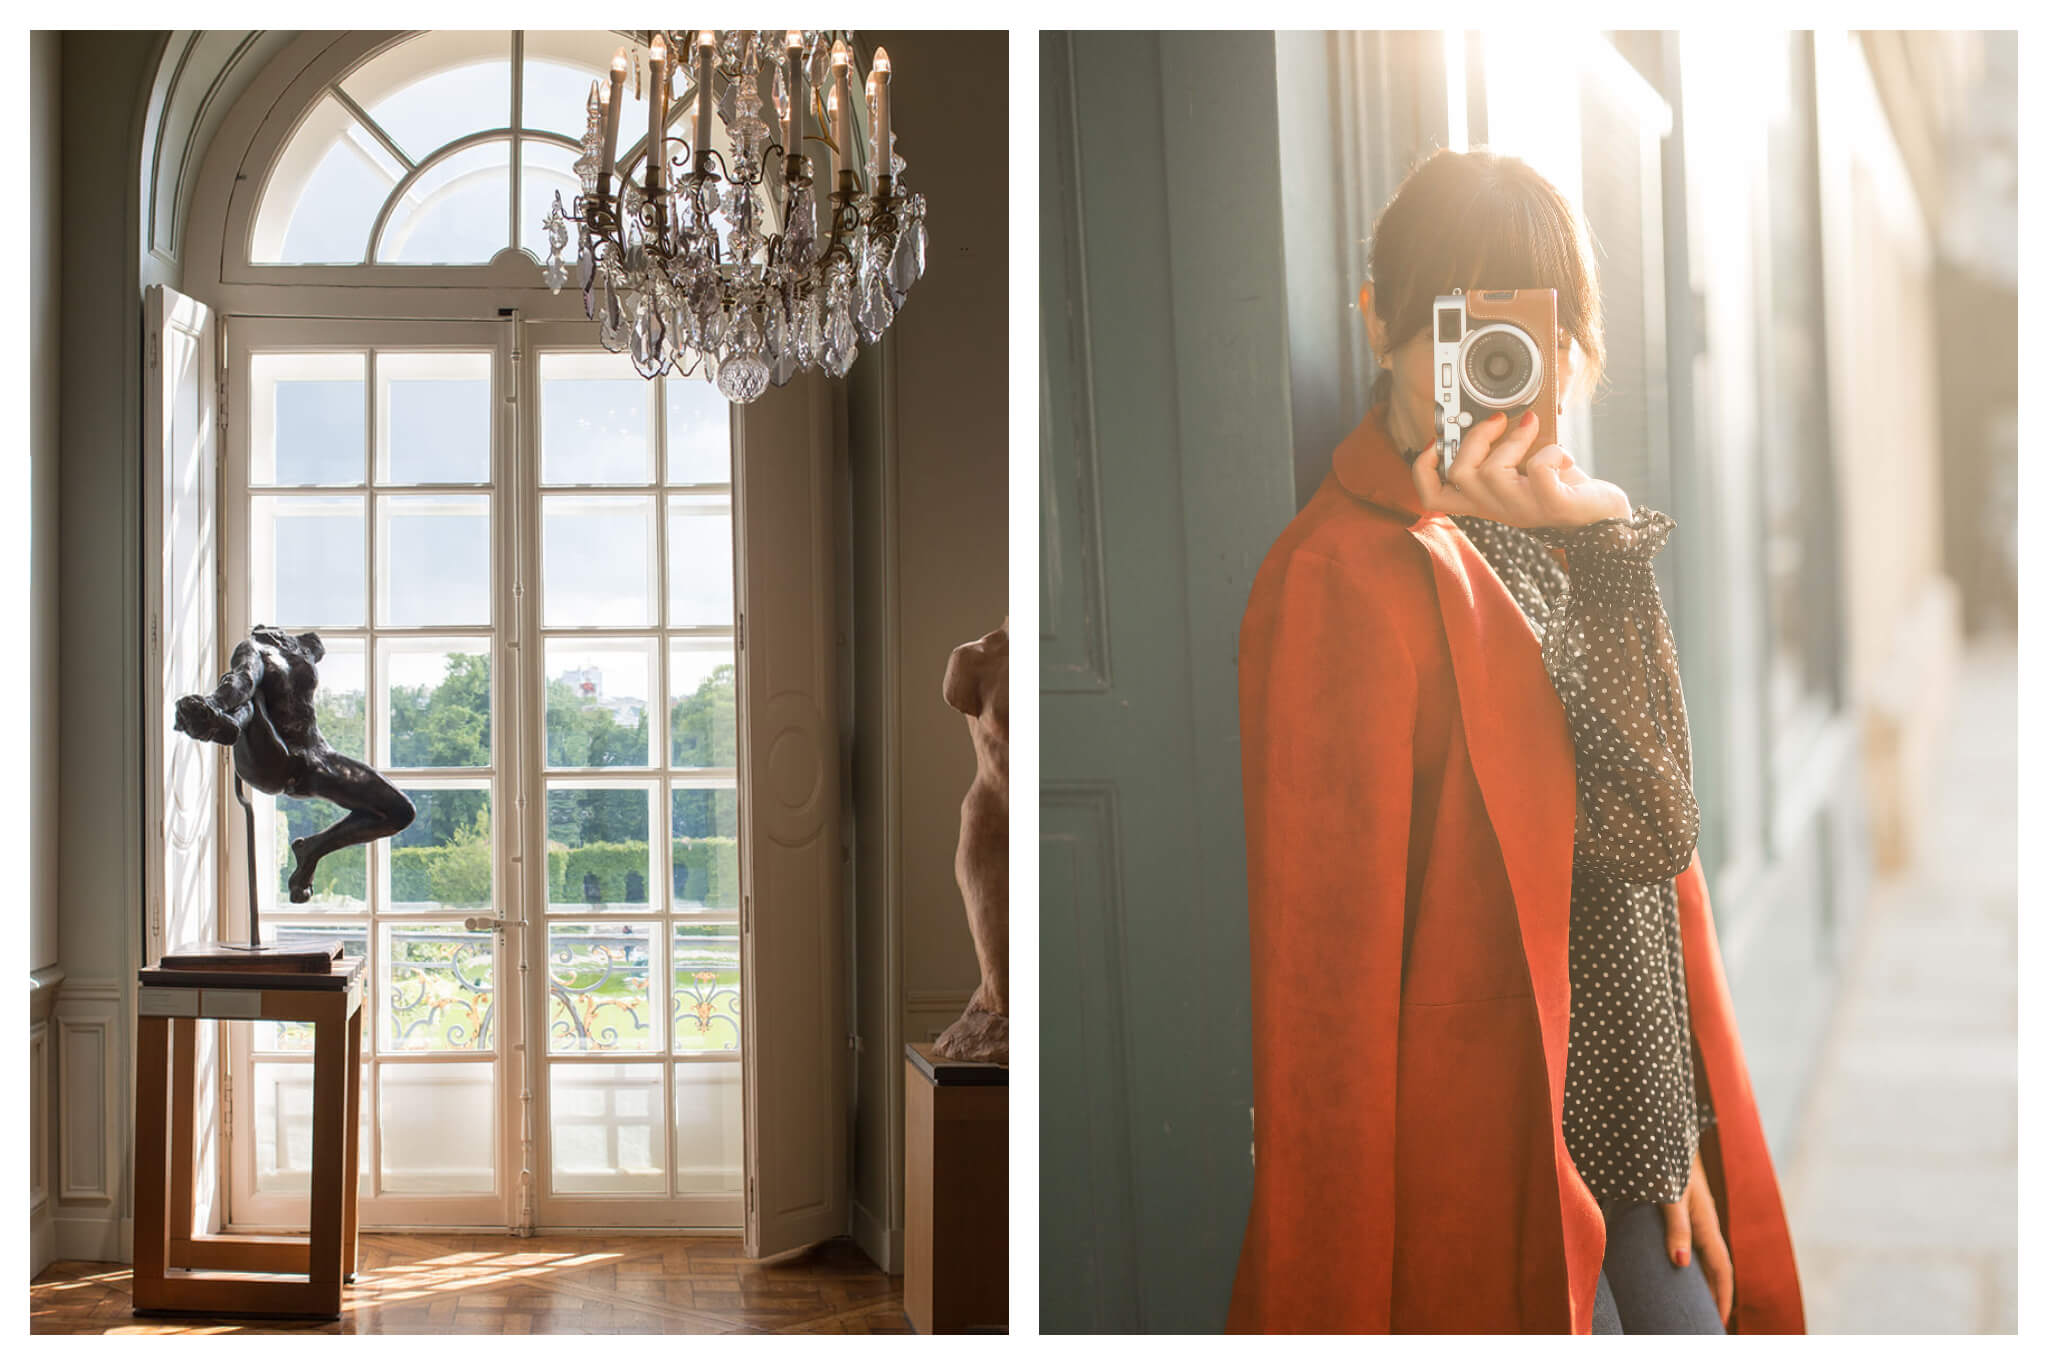 On left: French doors look out onto a sunny afternoon in the garden at the Musée Rodin, in Paris' 7th arrondissement. On right: Rebecca holds up her retro camera for a photograph at golden hour in Paris.